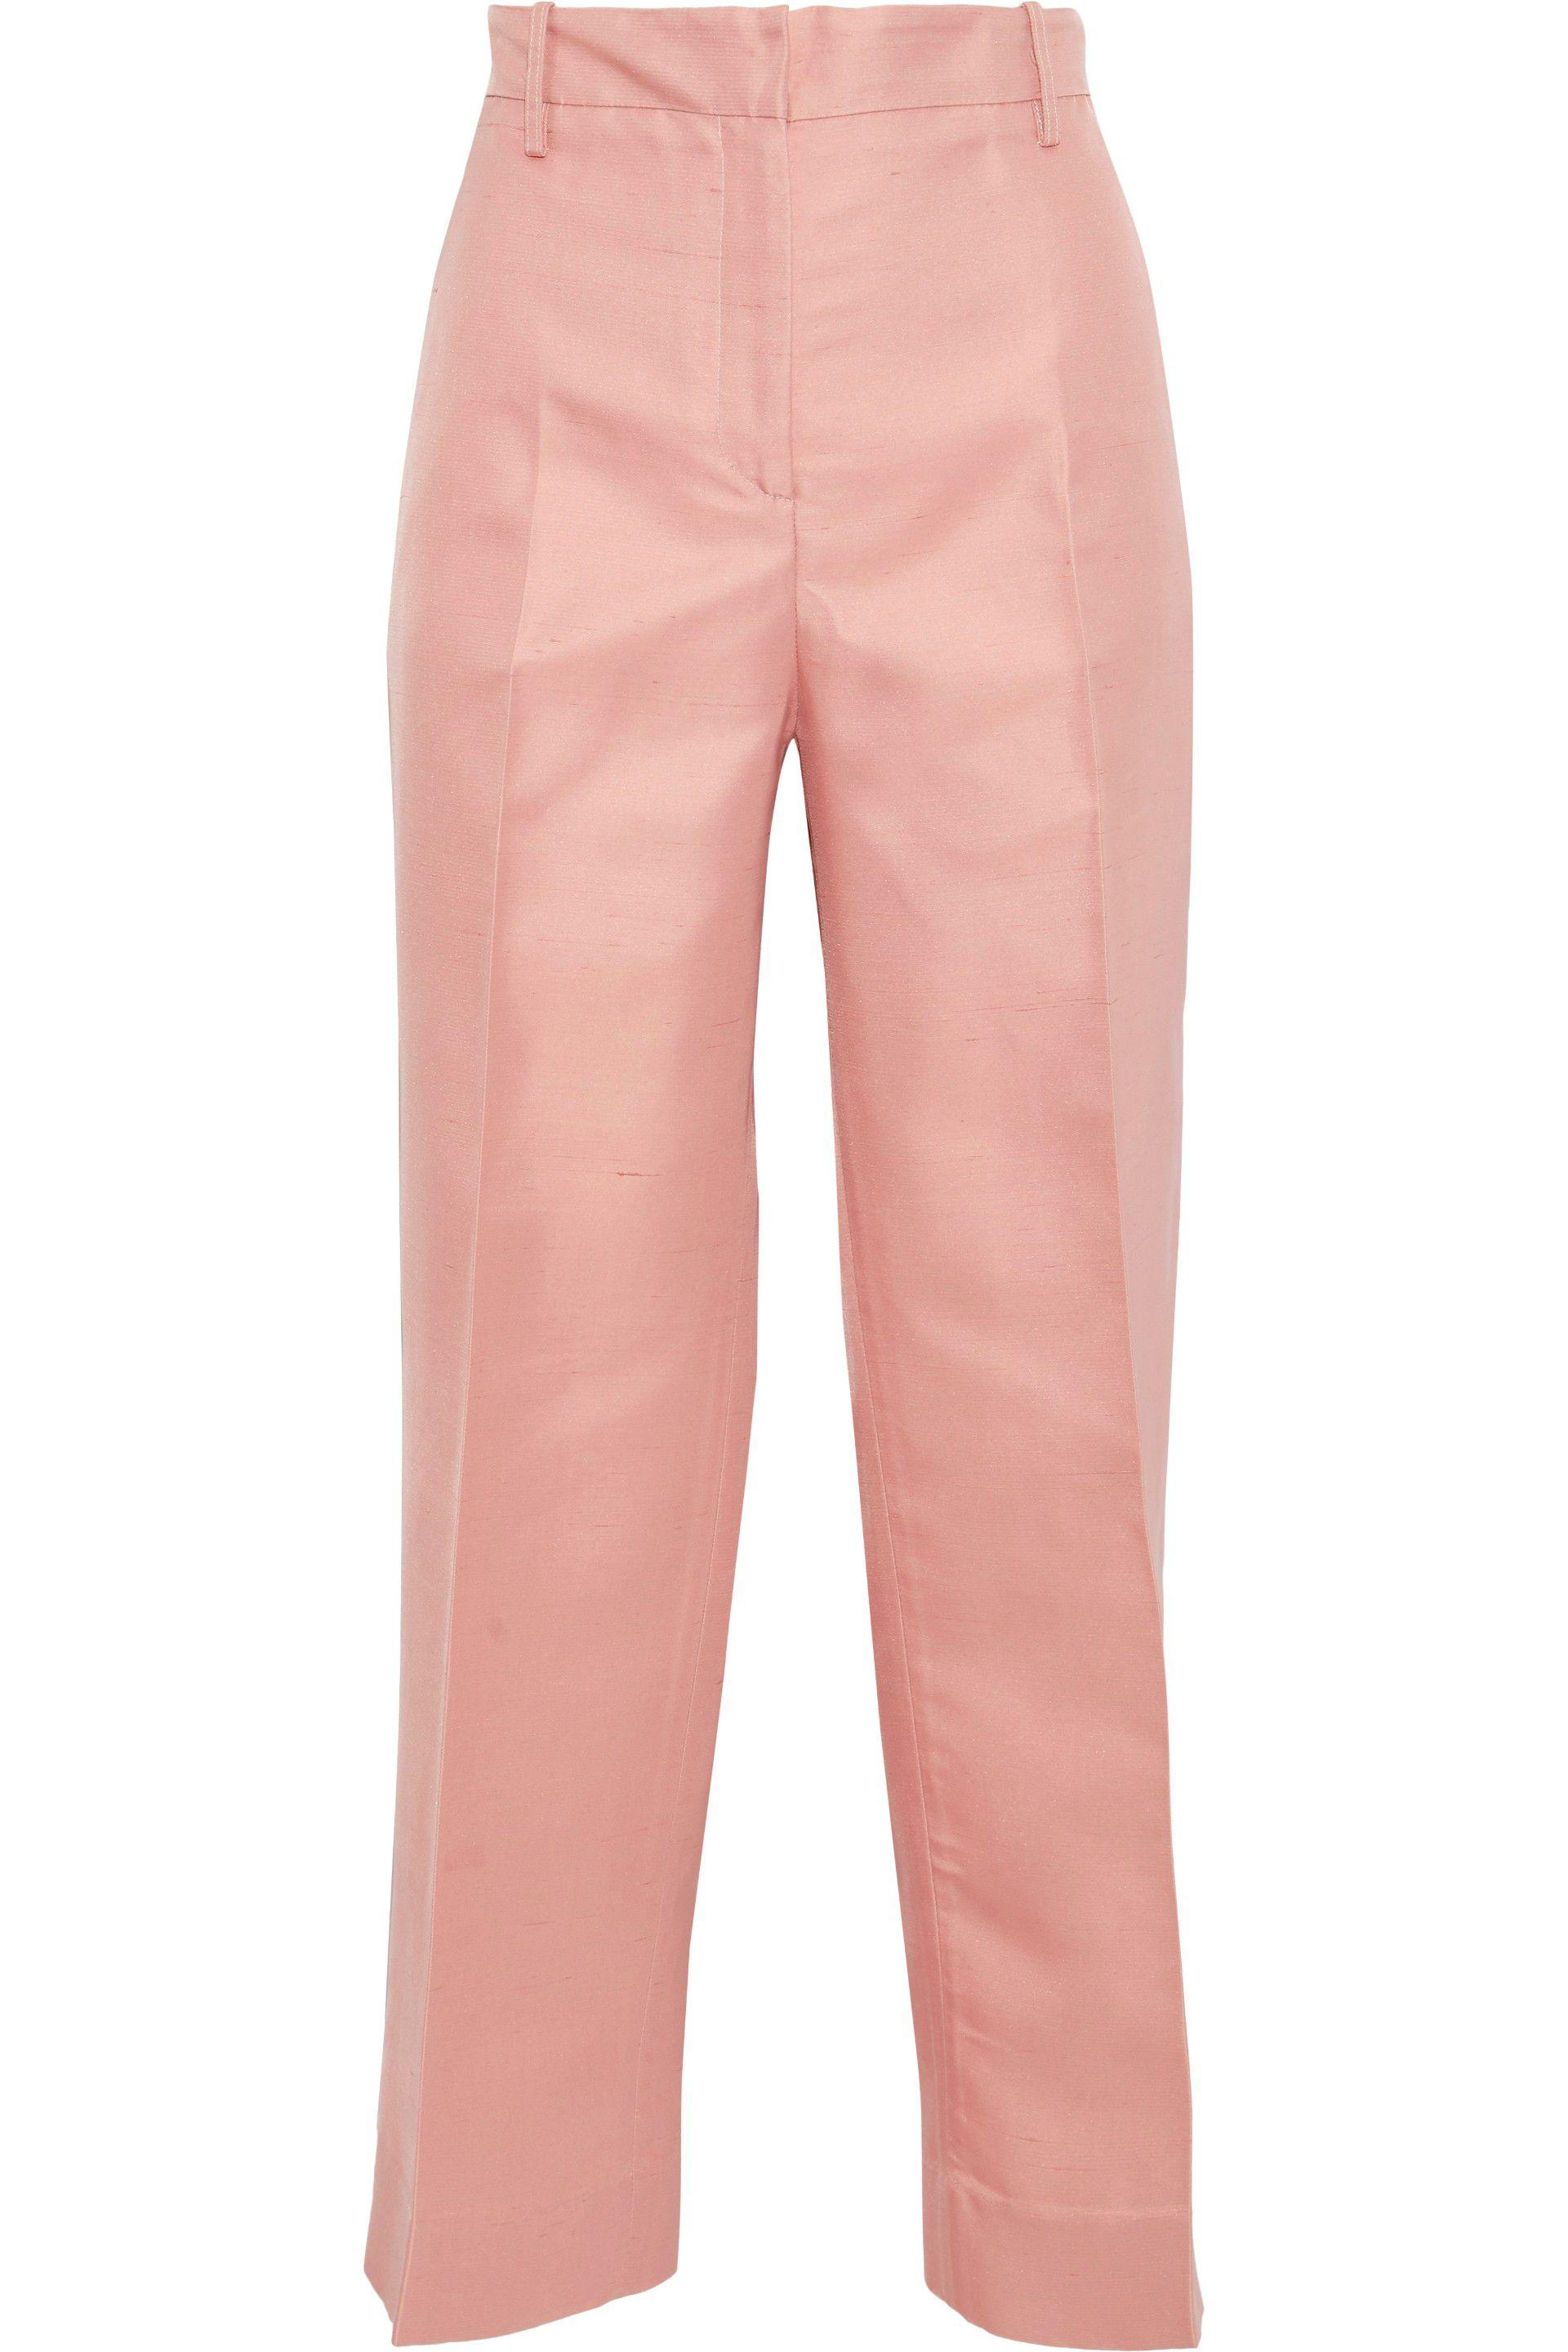 26fed2041ce36c mansur-gavriel-Blush-Woman-Silk-shantung-Straight-leg-Pants-Blush.jpeg